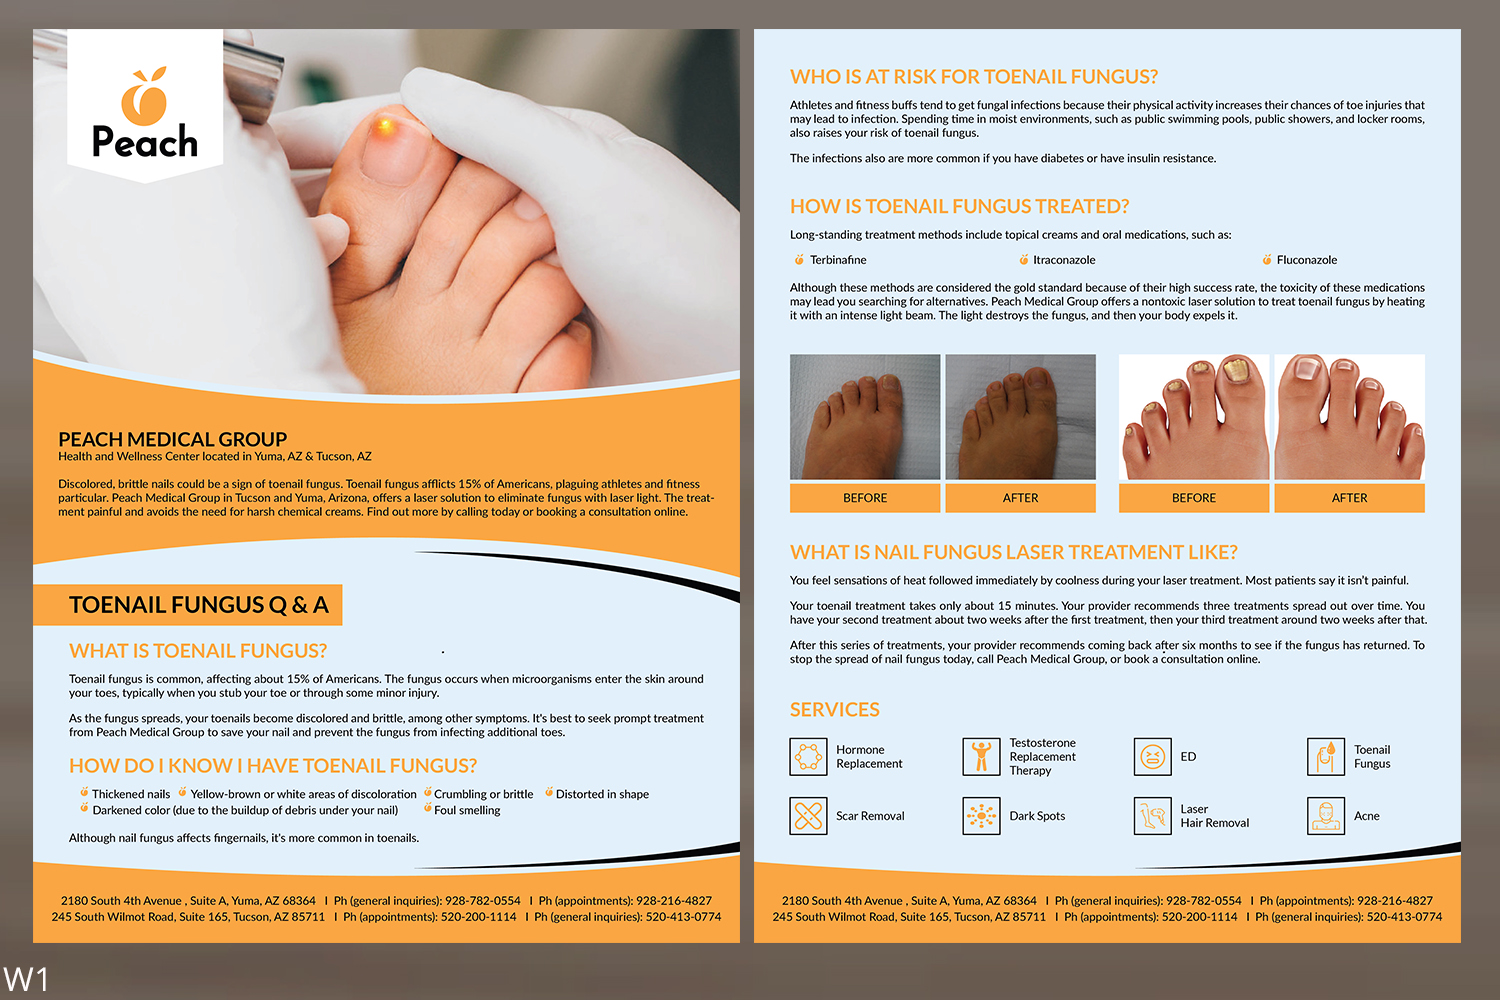 Modern, Professional, Healthcare Flyer Design for a Company